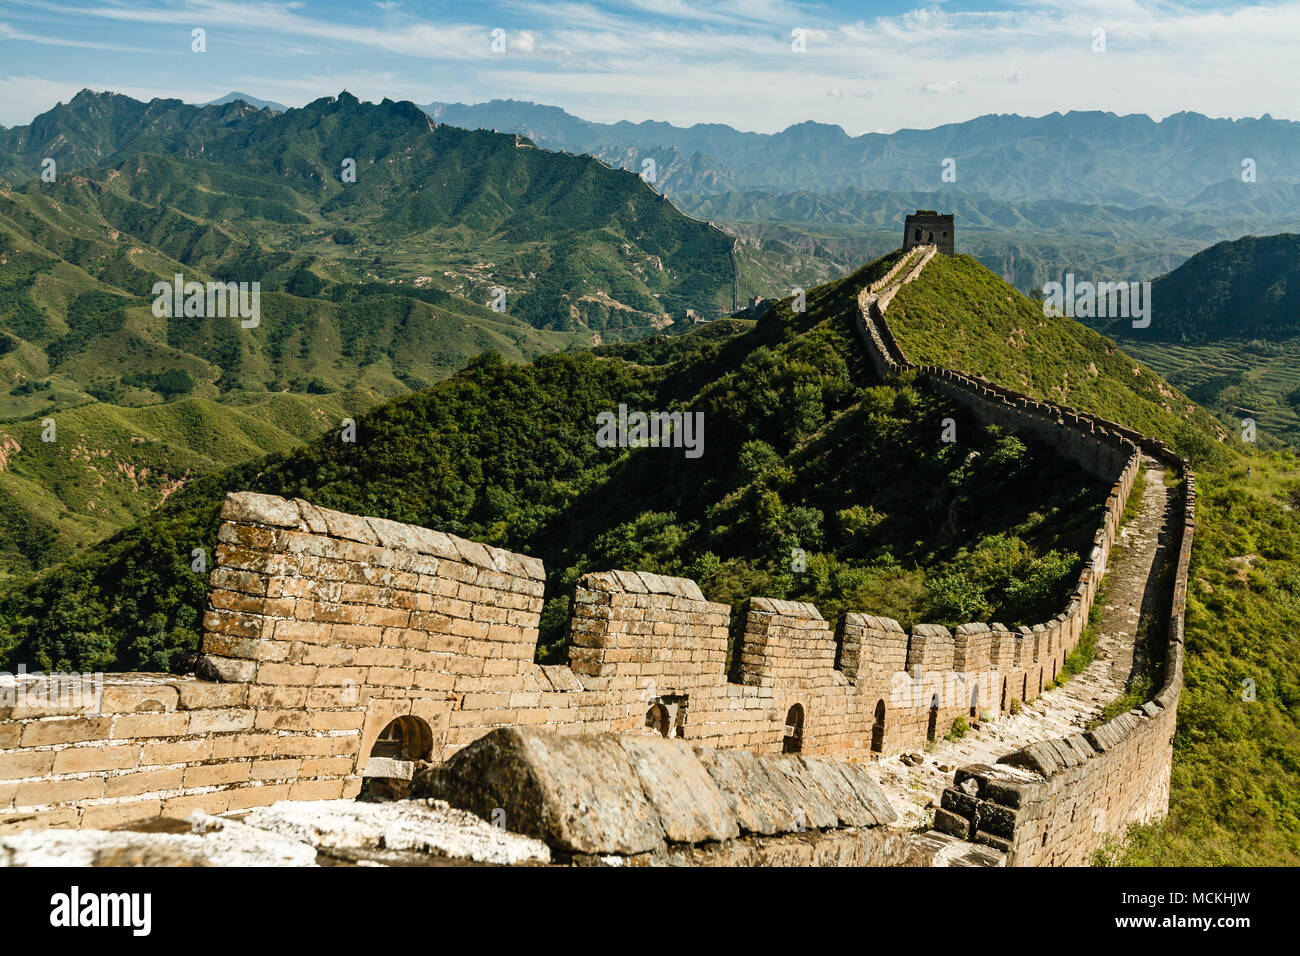 Expansive view of stretch of the Great Wall of China and green mountainous countryside - Stock Image